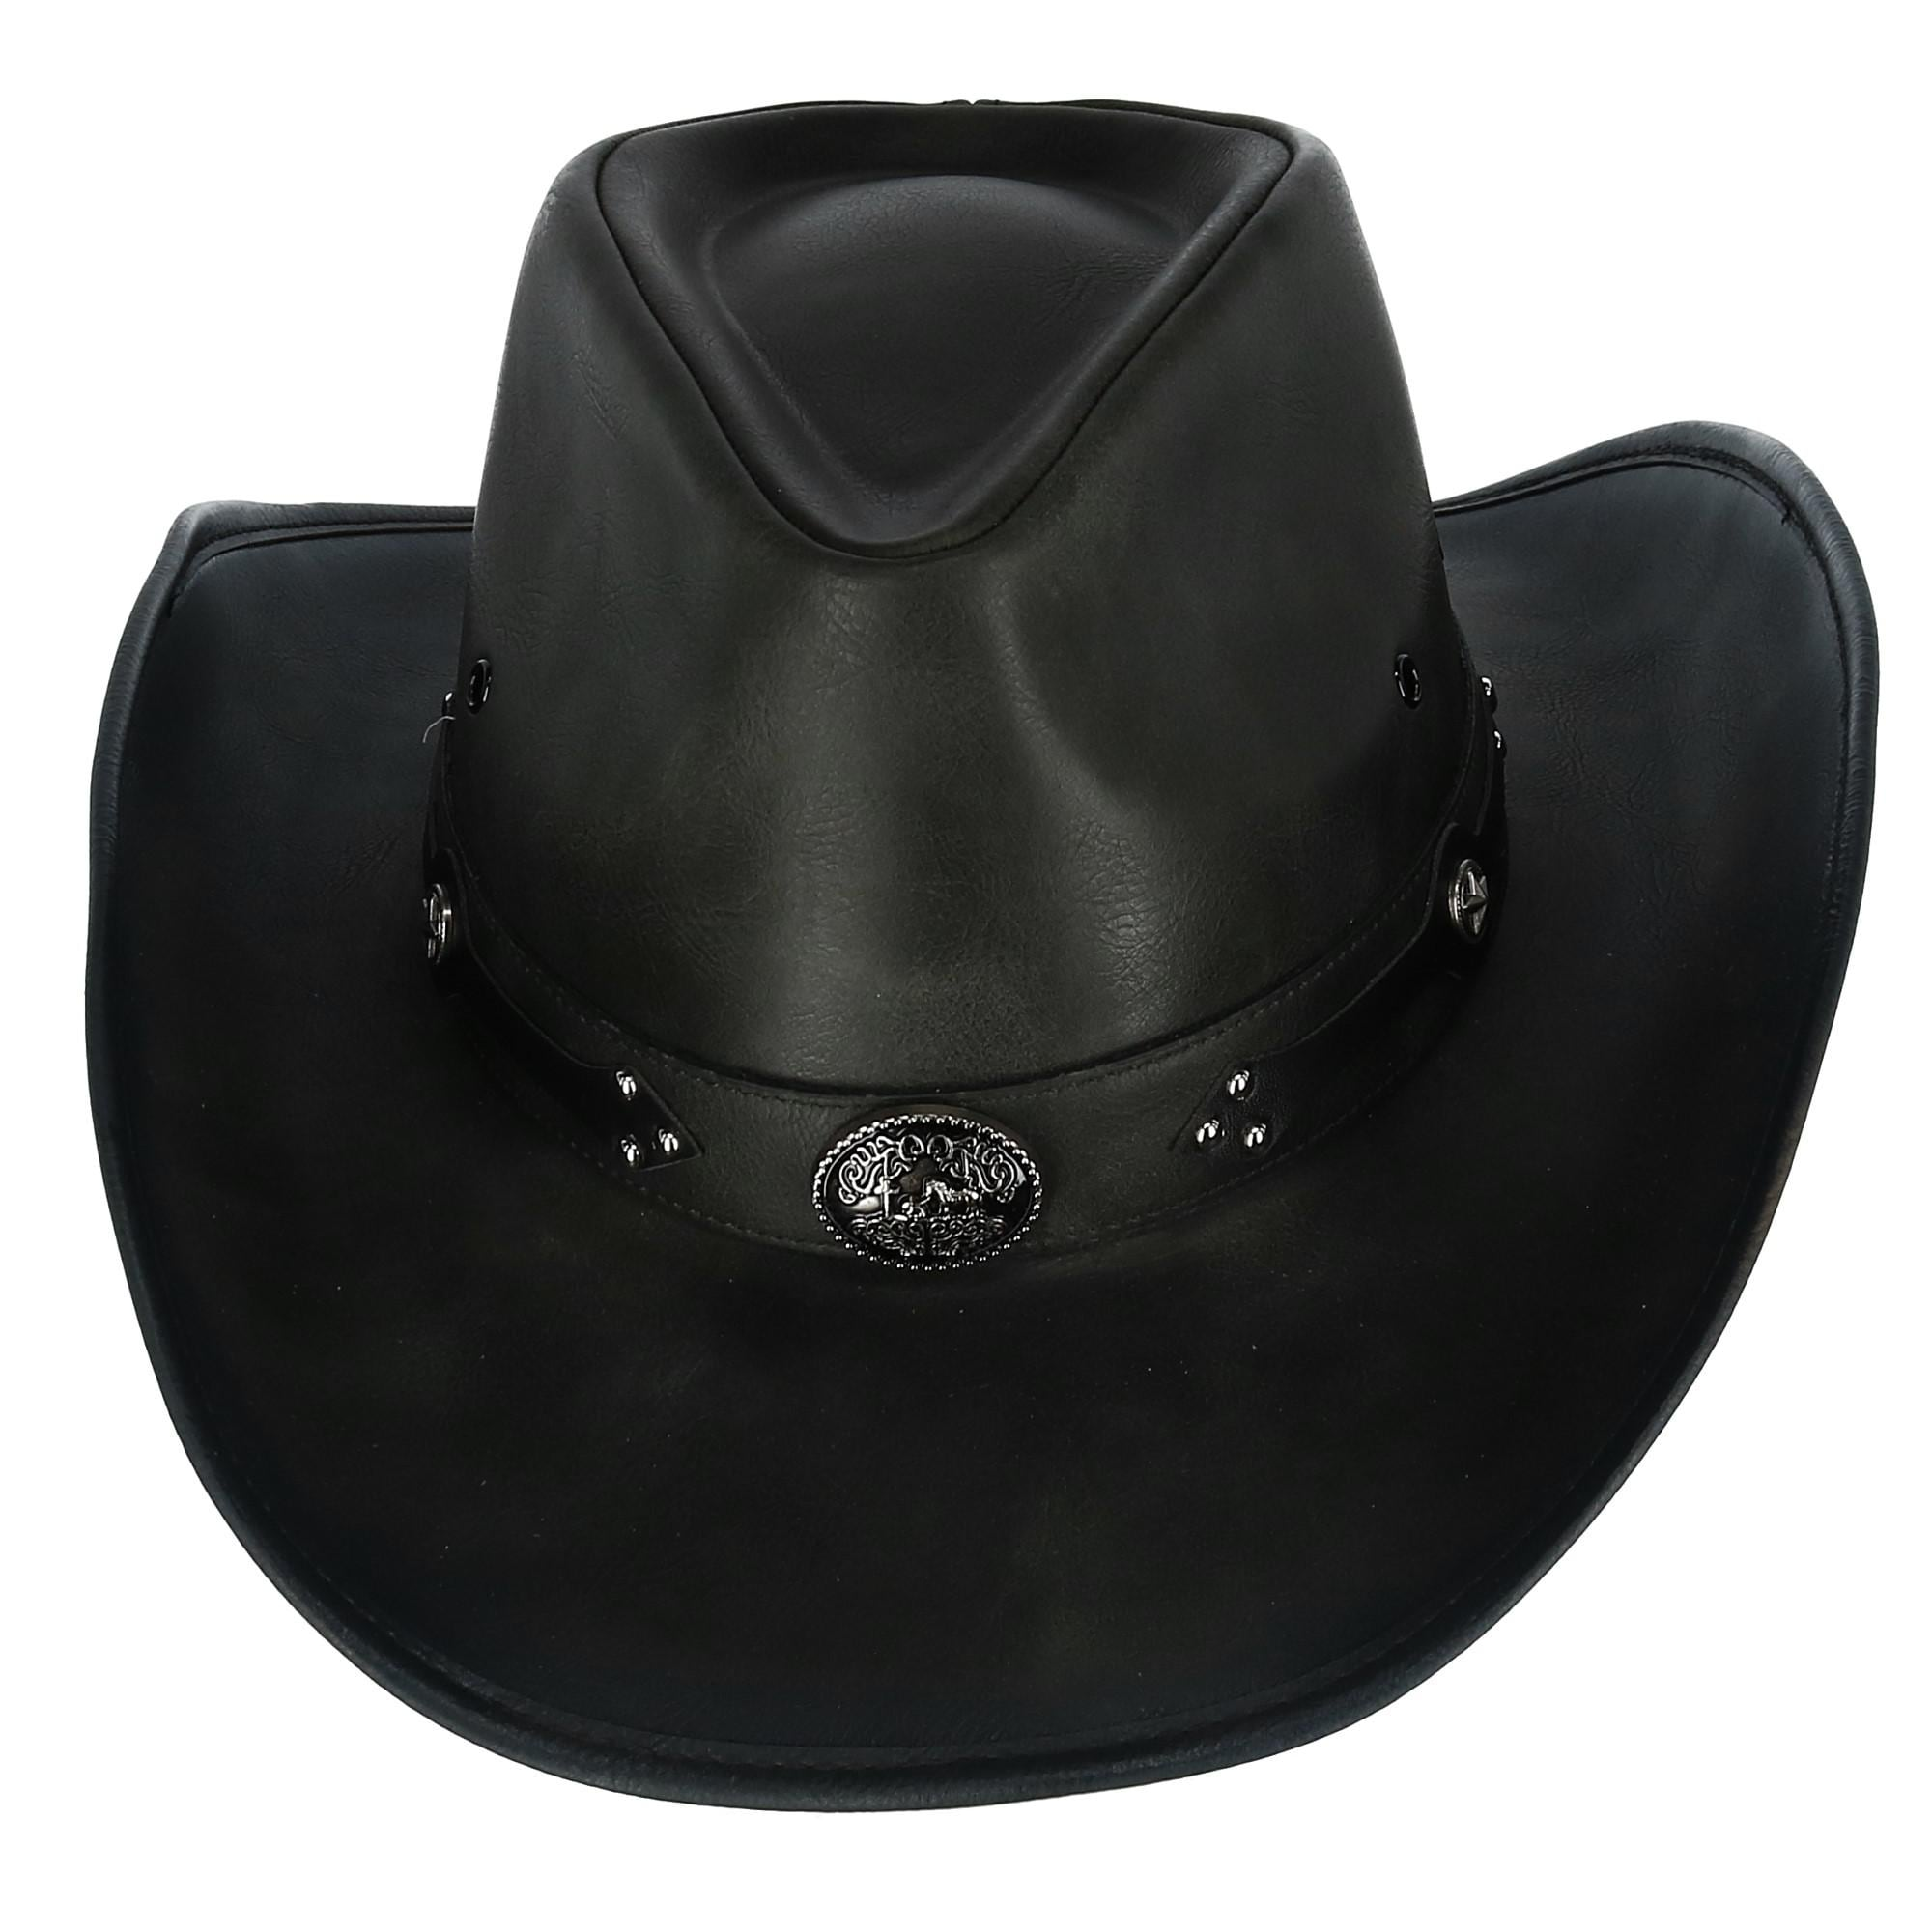 068a9df2 Shop Kenny K Men's Distressed Faux Leather Western Hat with Black Conchos  and Studs - Free Shipping On Orders Over $45 - Overstock - 24184220